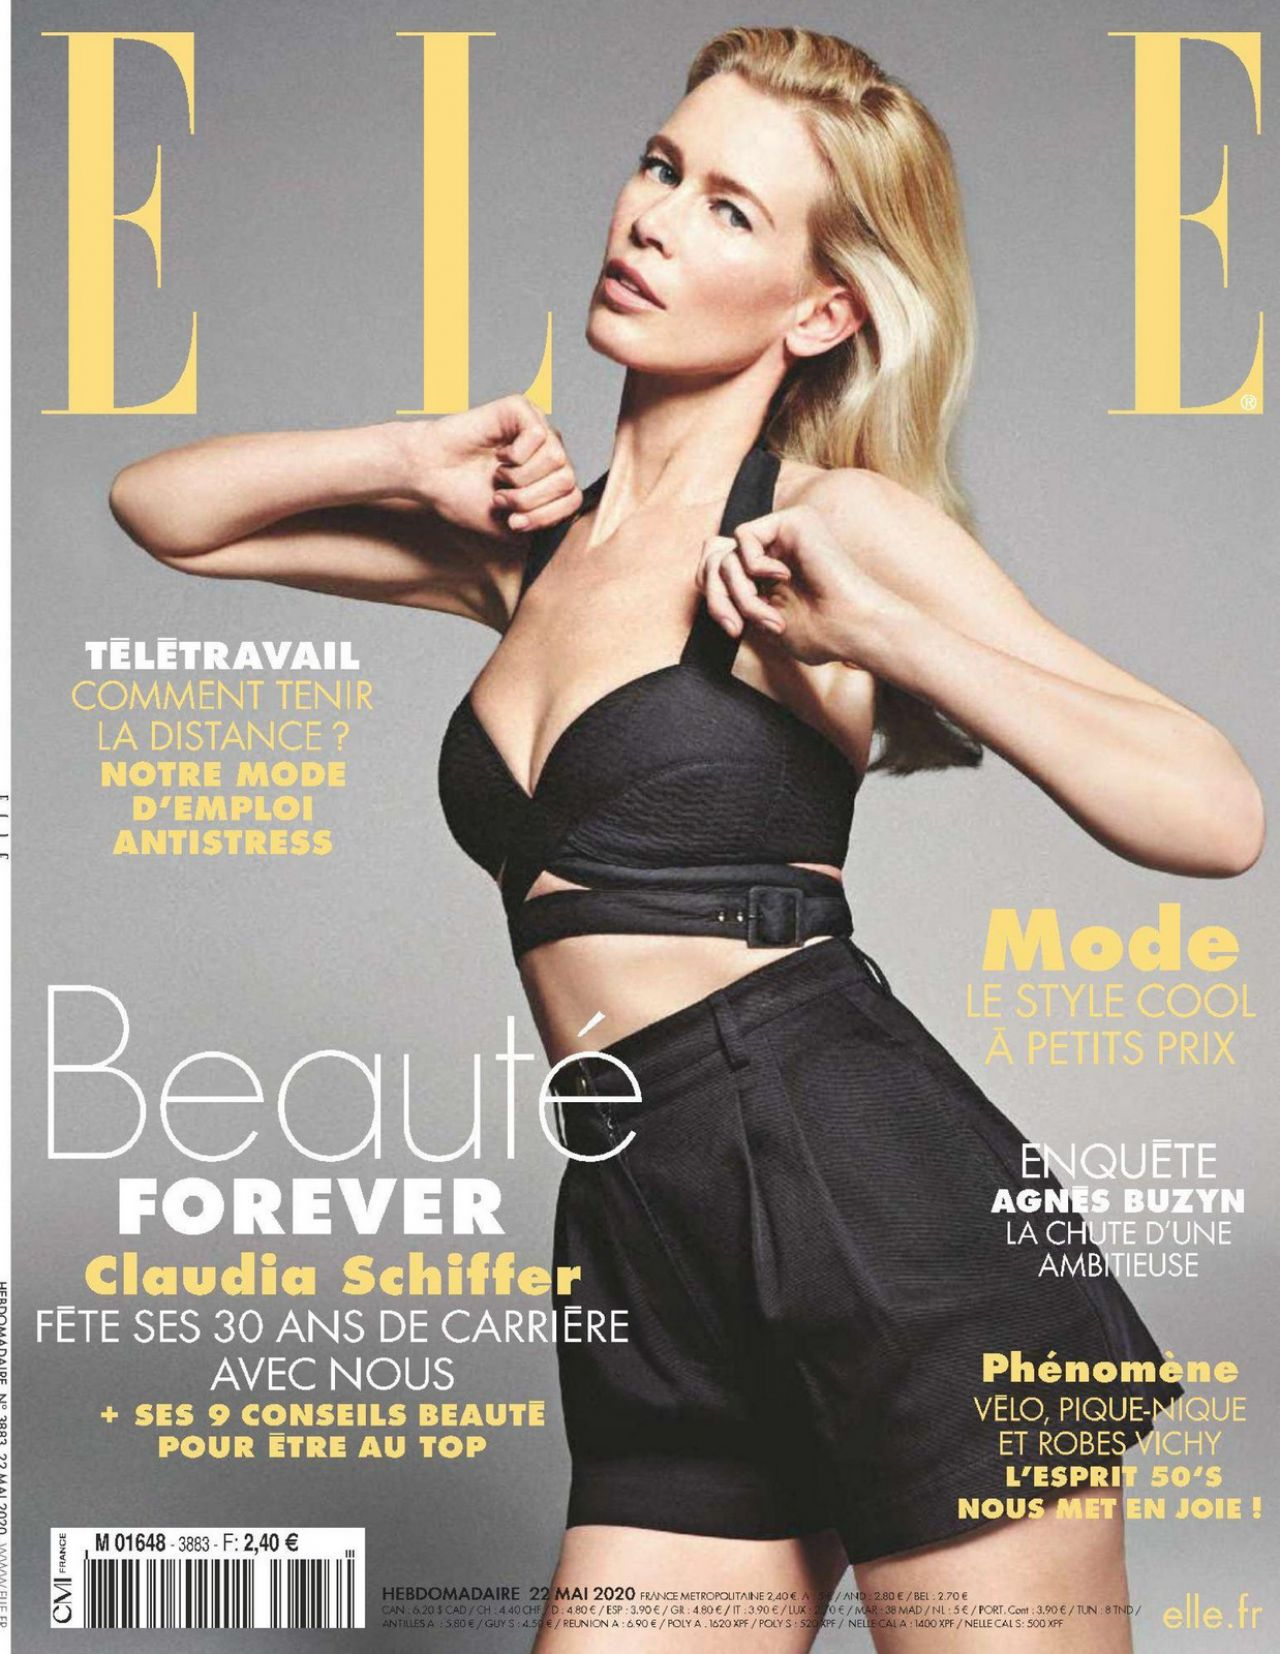 claudia-schiffer-covers-elle-magazine-france-05-22-2020